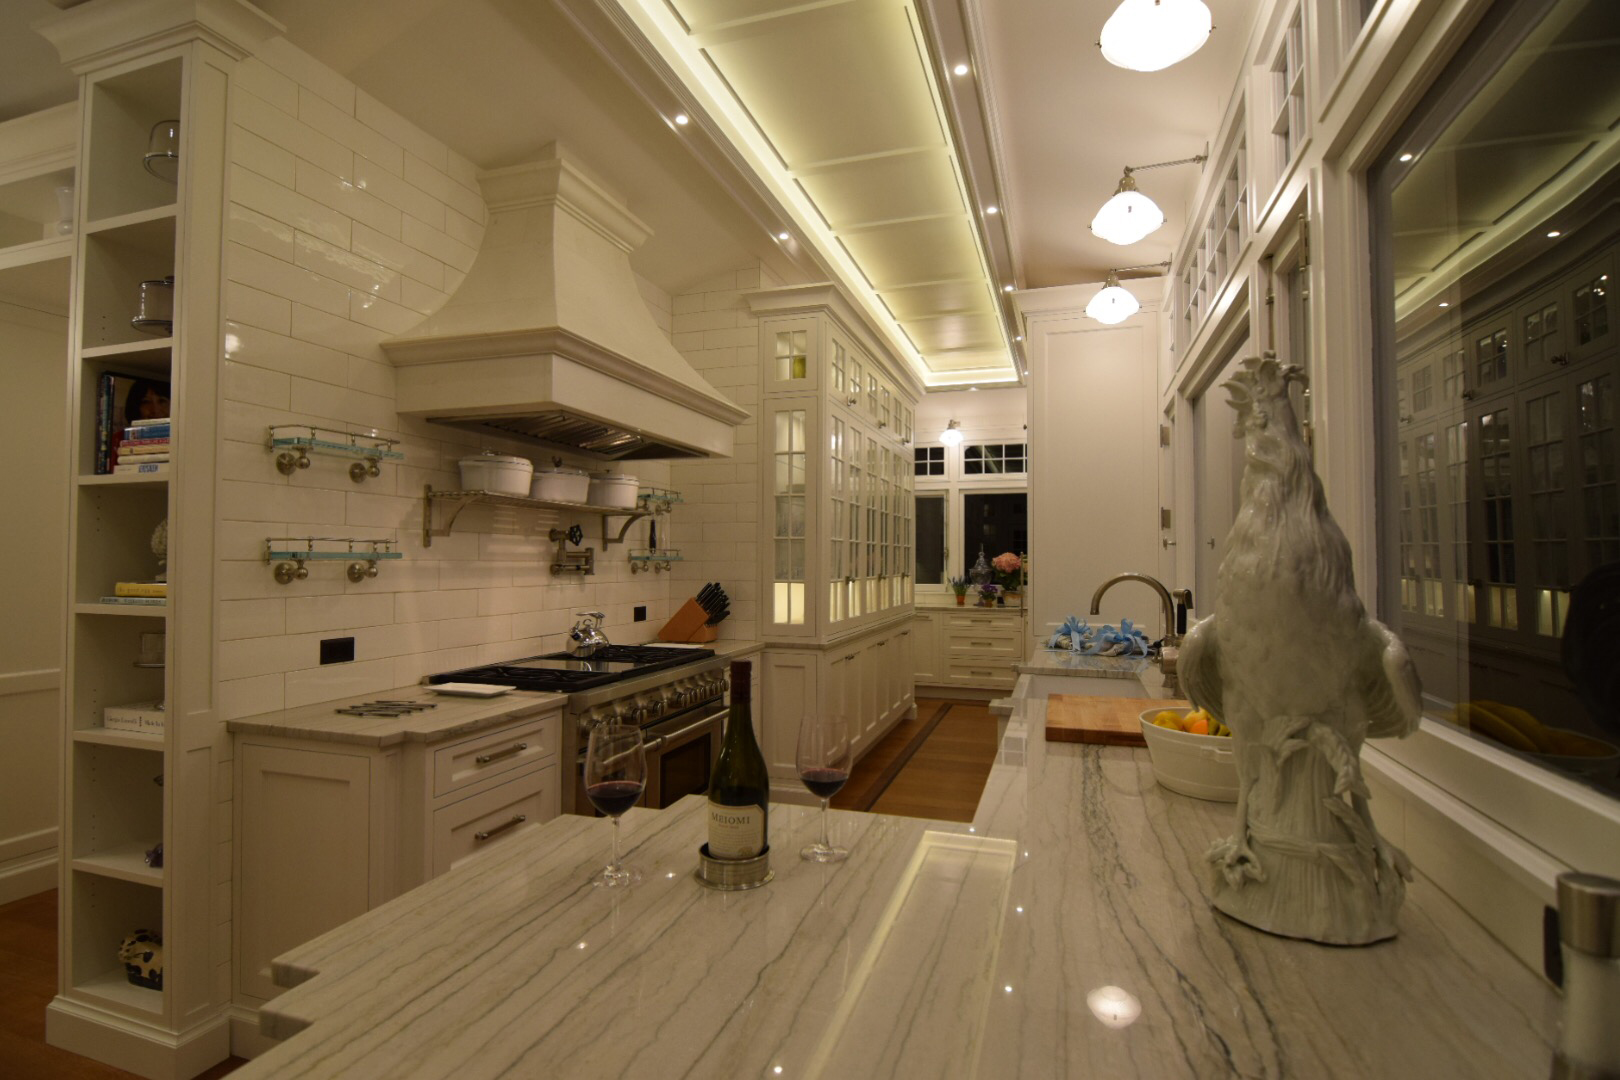 custom-kitchen-face-frame-with-inset-cabinet-doors-solid-and-true-divider-lights-antique-European-glass.jpg